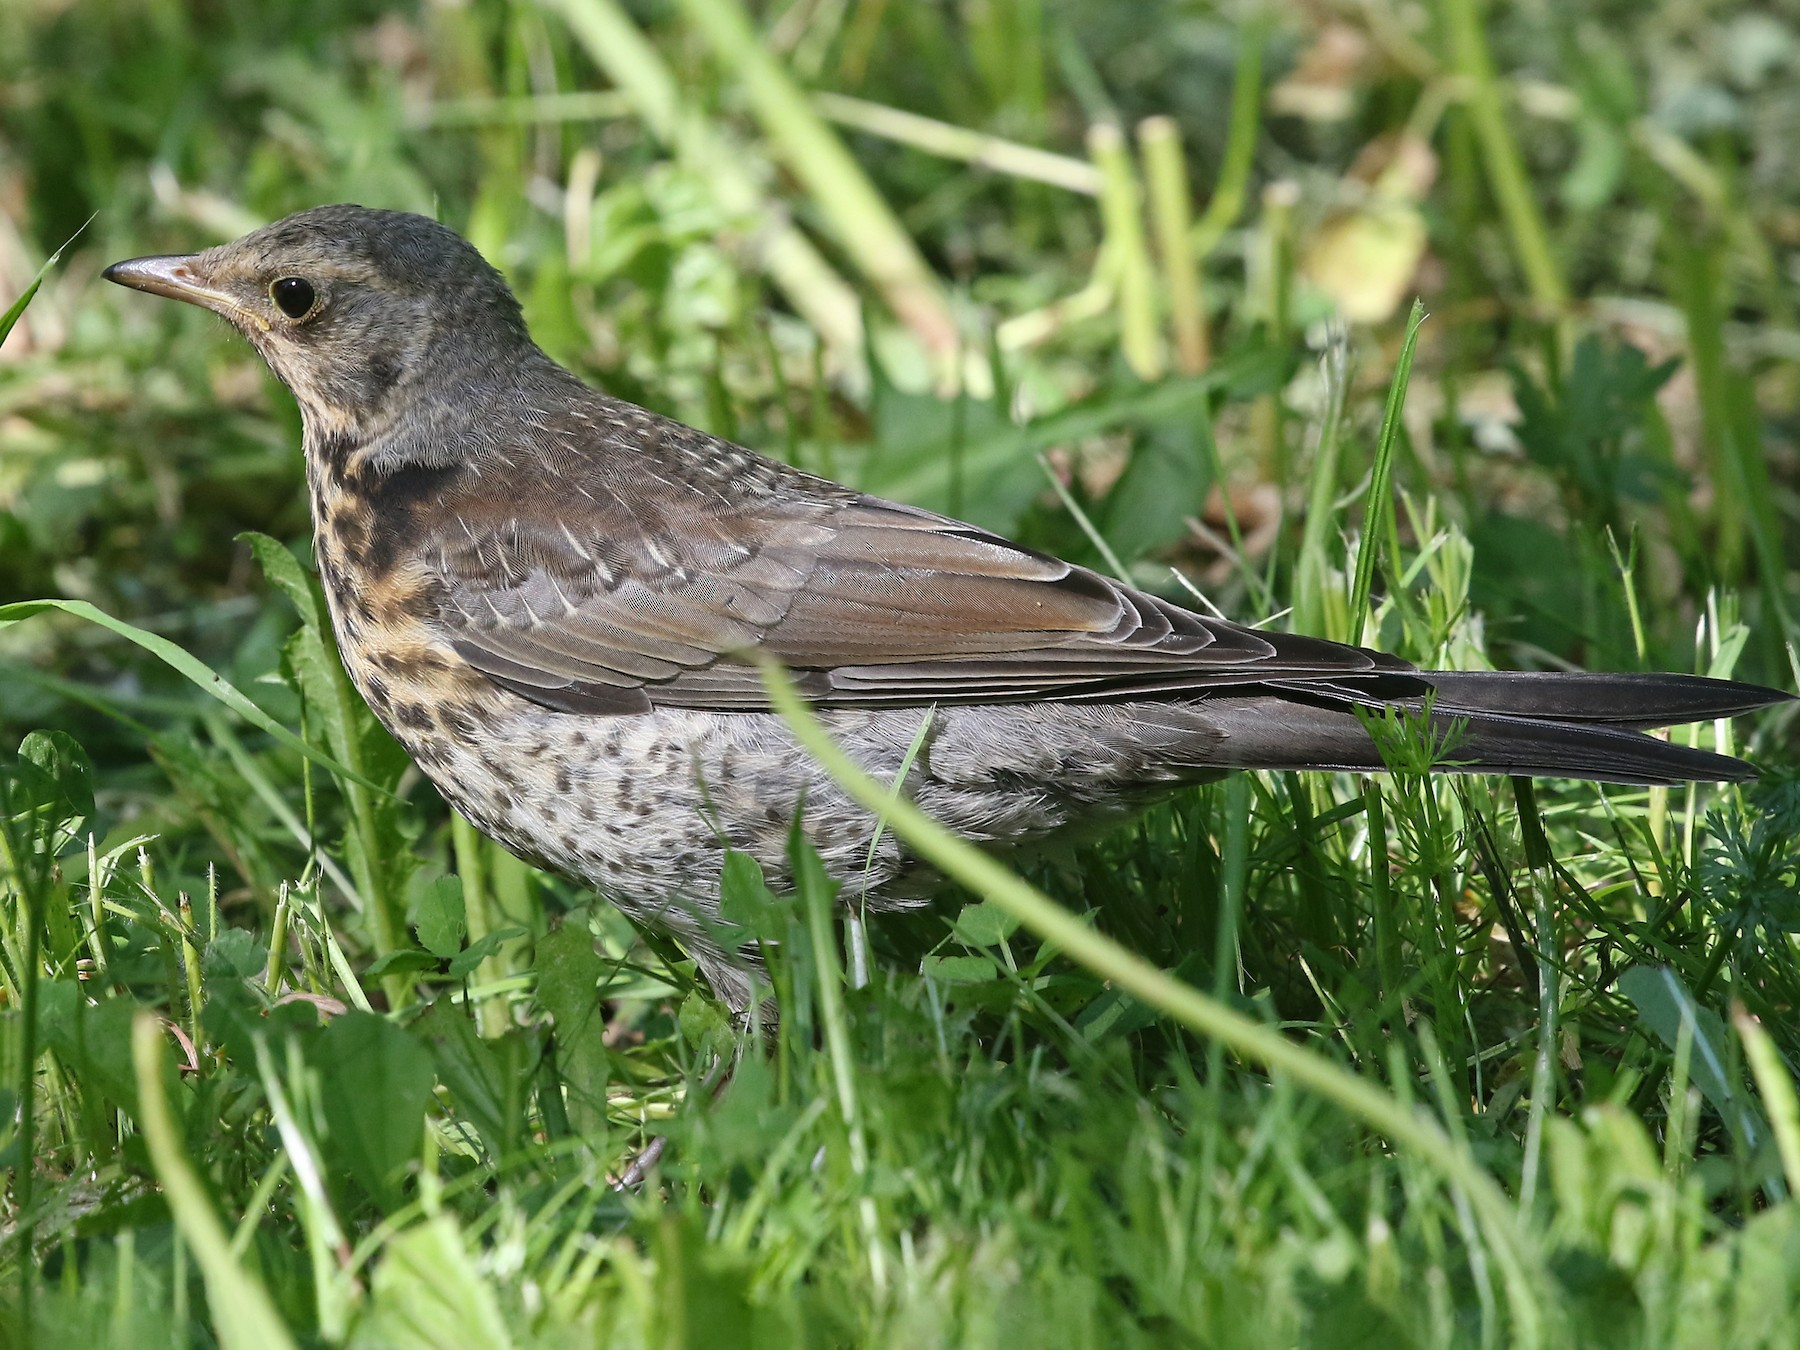 Fieldfare - Phillip Edwards